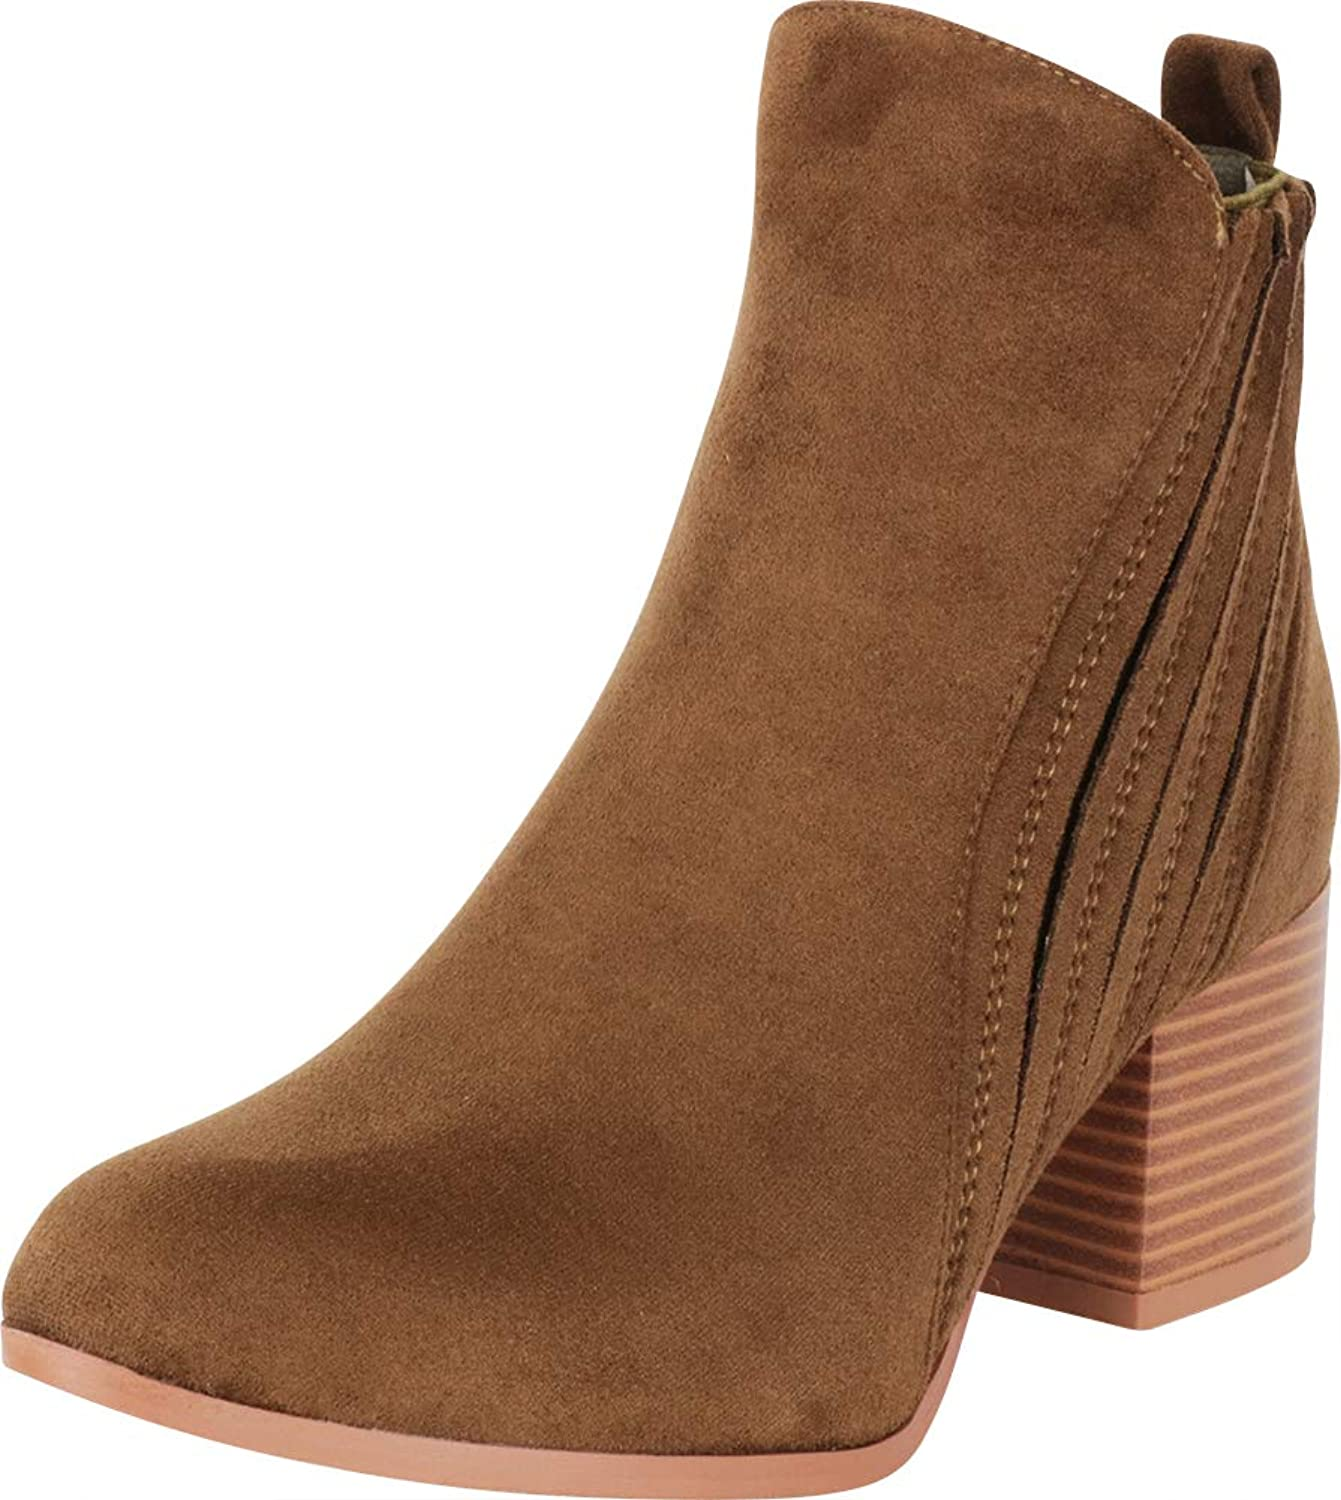 Cambridge Select Woherrar Pointed Toe Stitched Chunky Stacked Stacked Stacked Block Heel Ankle Booslips  förstklassiga kvalitet först